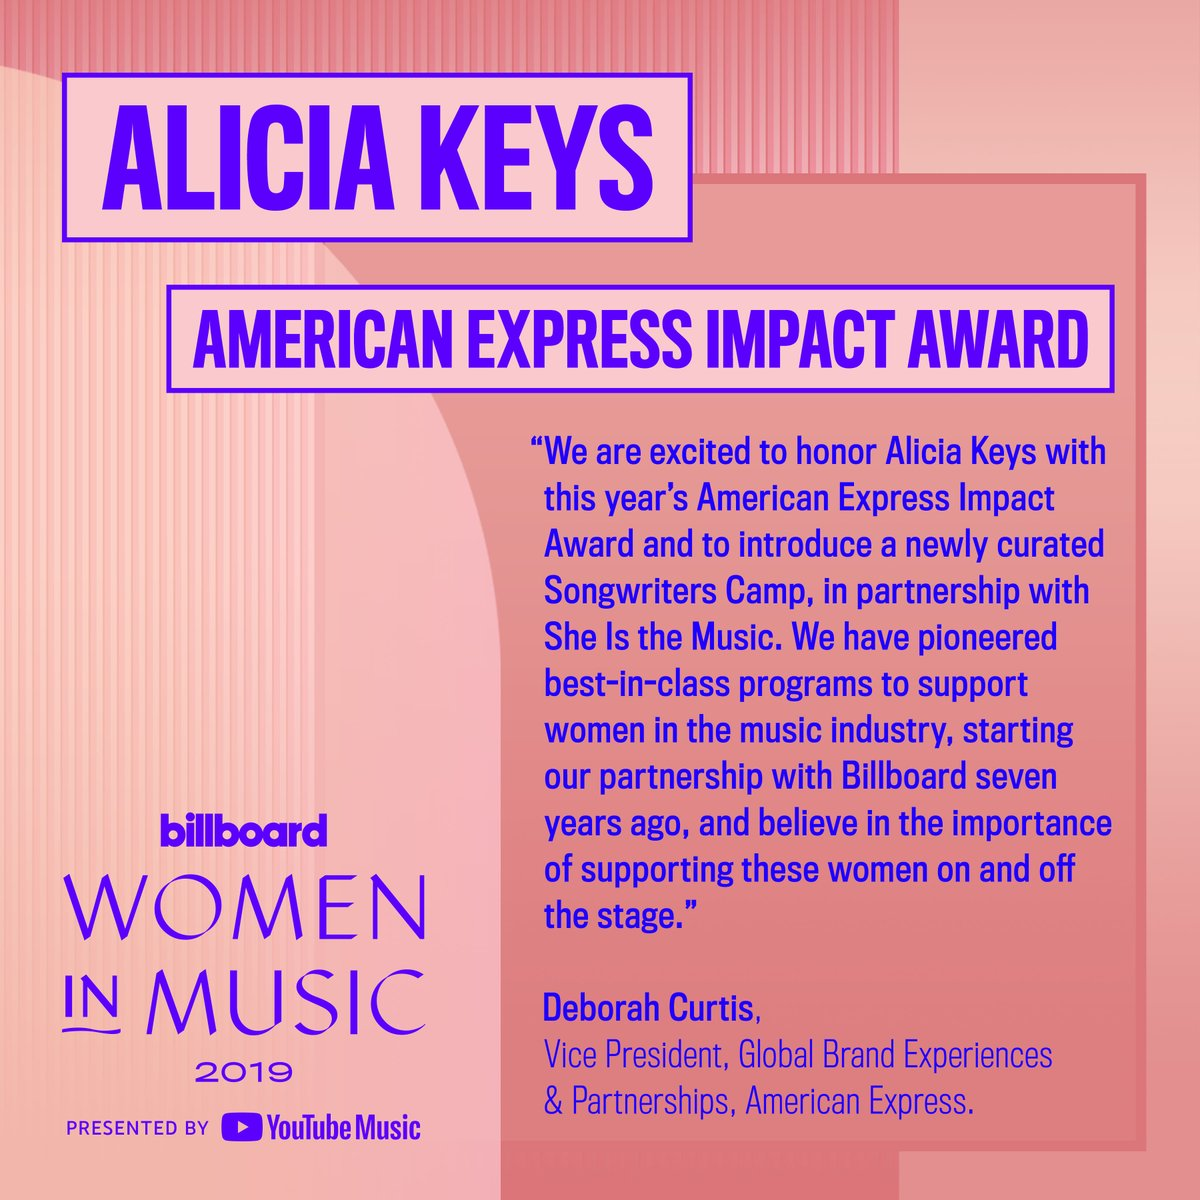 RT @billboard: Alicia Keys will receive the @americanexpress Impact Award at this year's #BBWomenInMusic for her support of women on and off the stage. Learn more about the honor here: https://blbrd.cm/M7lpxE